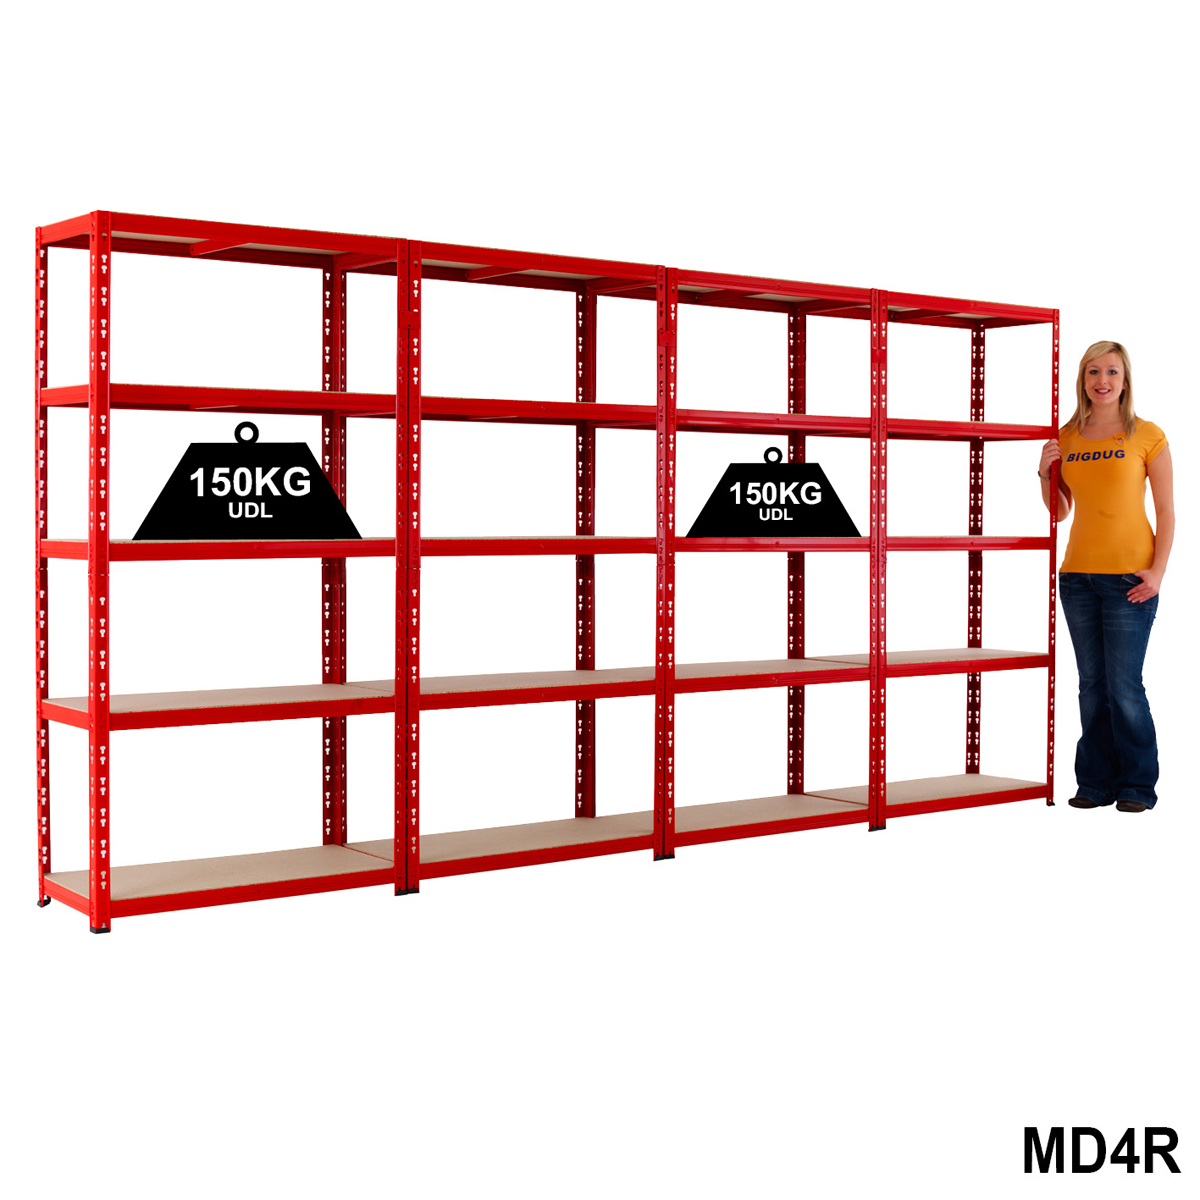 4 Red Shelving Bays 1780h x 900w x 400mmd - 150kg UDL Per Level BiGDUG